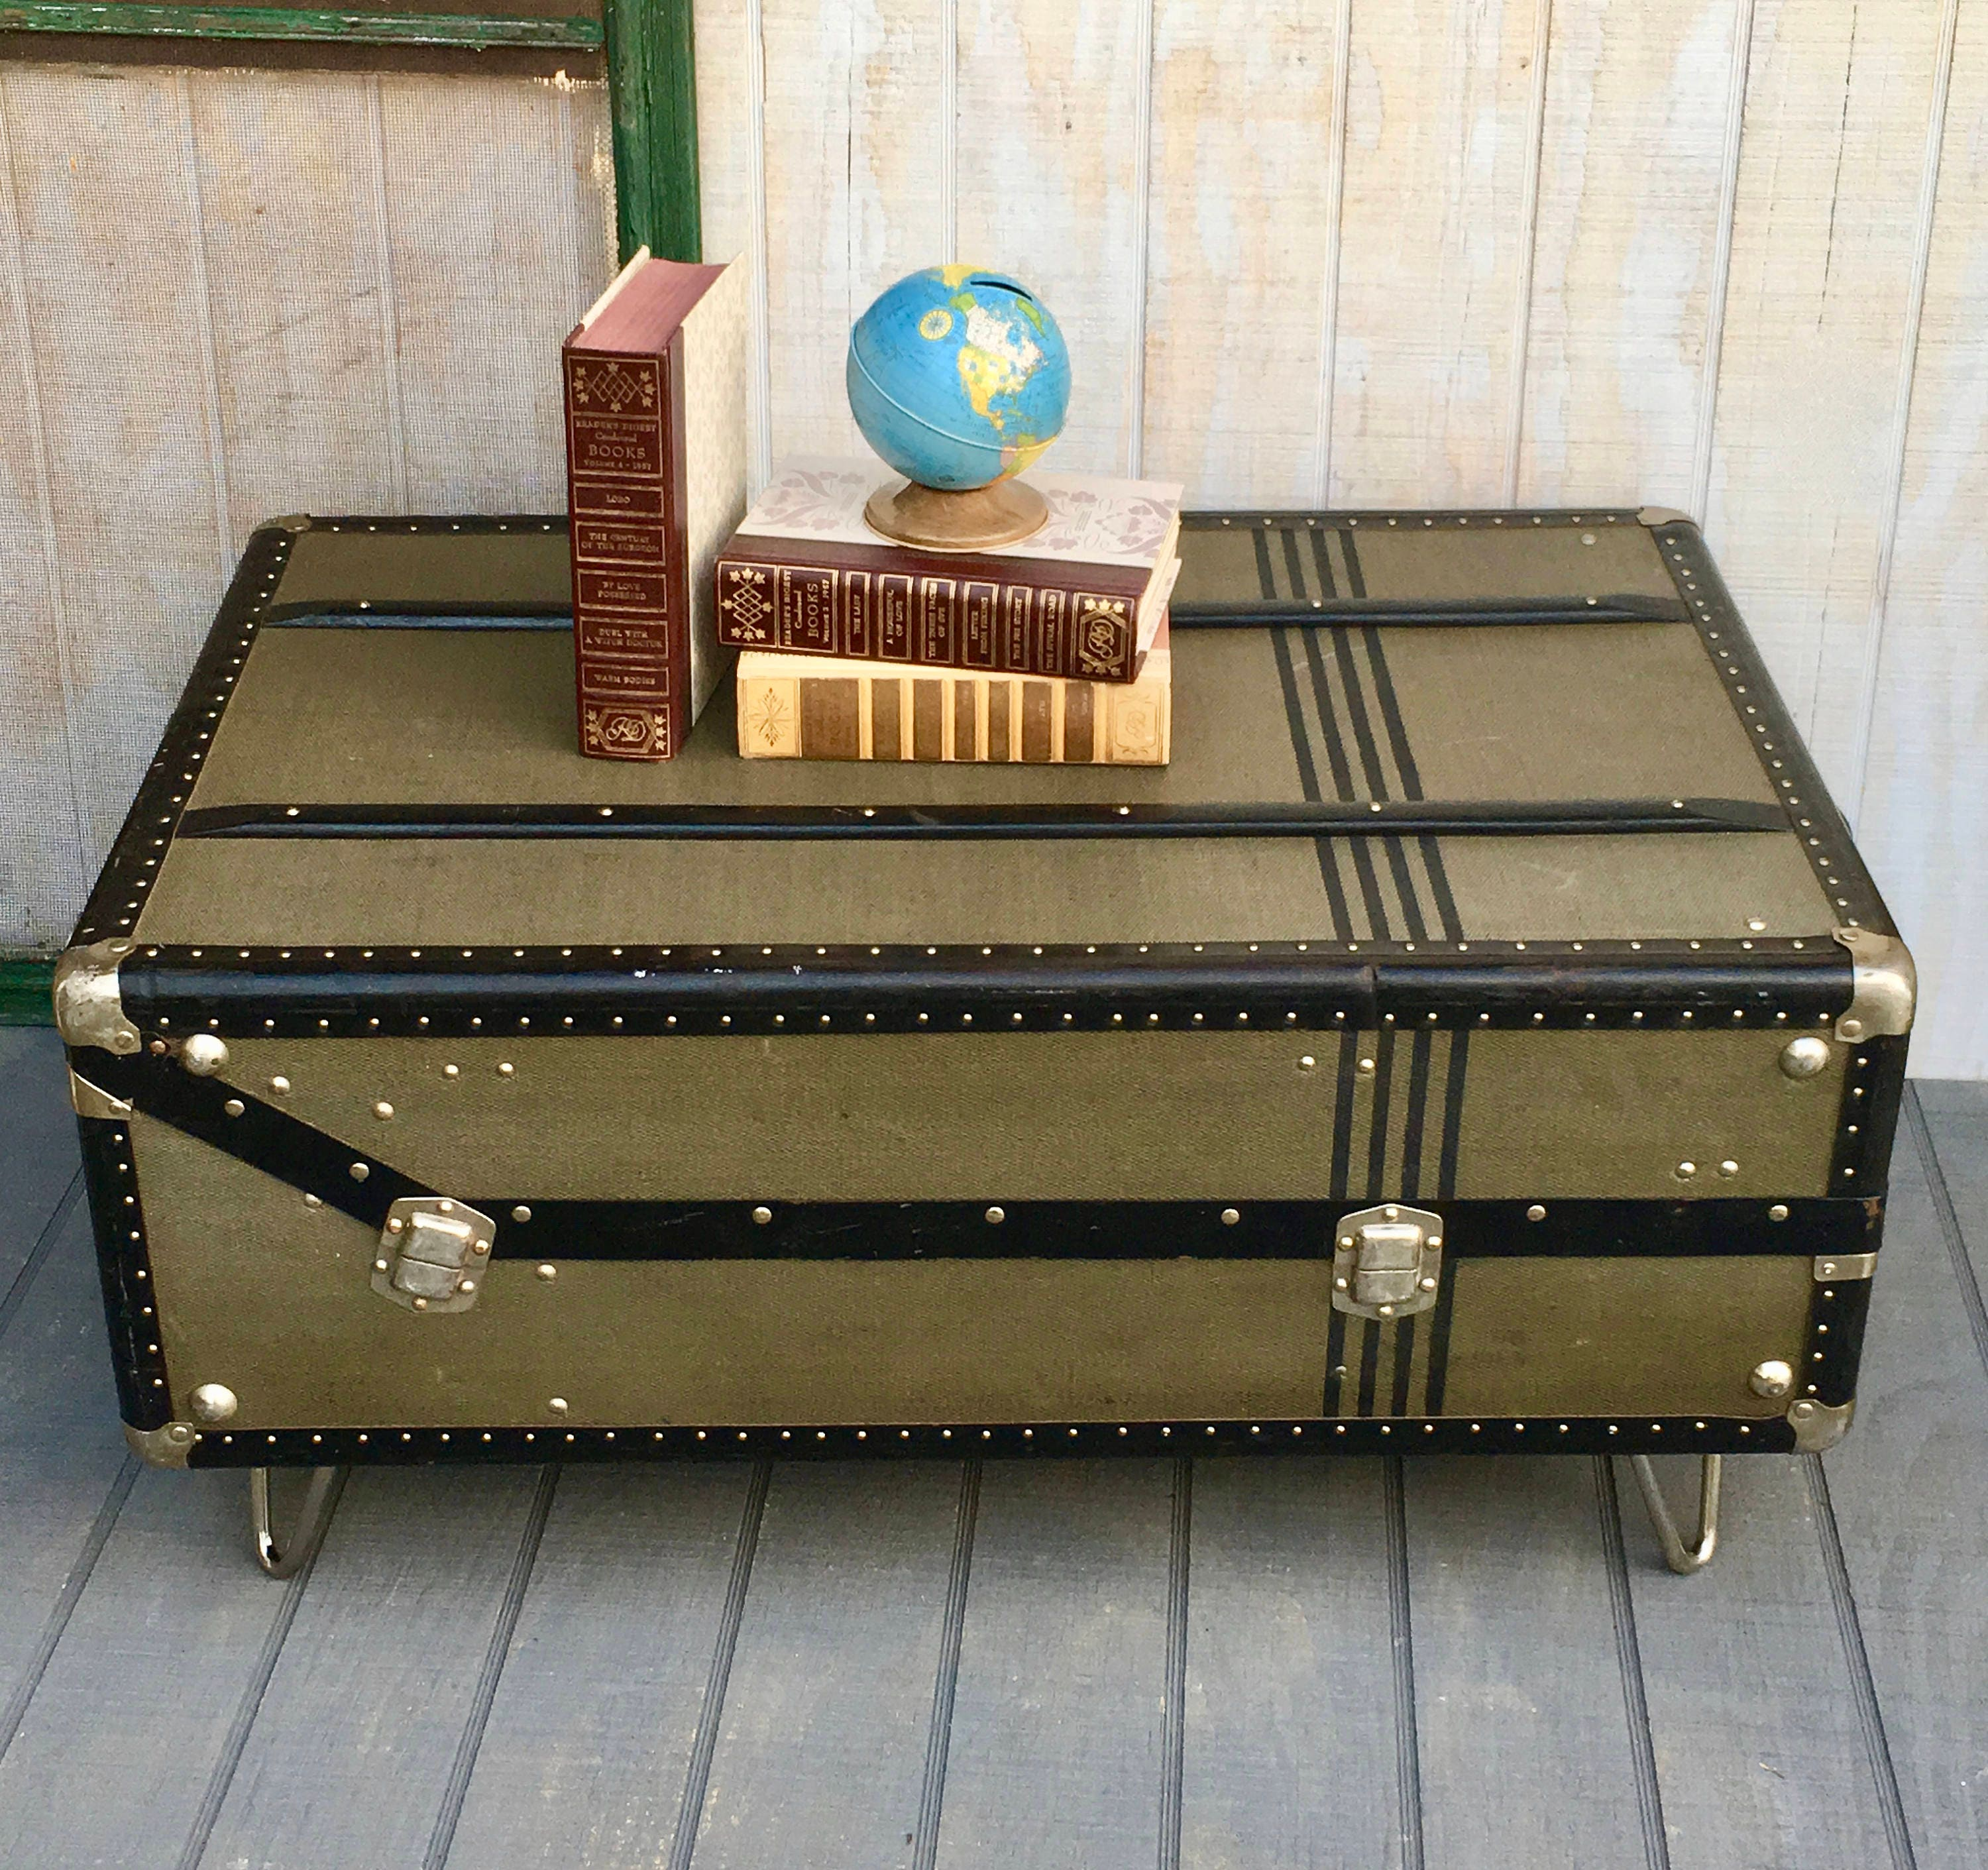 Vintage Gentleman s Trunk 1930 s Coffee Table Made